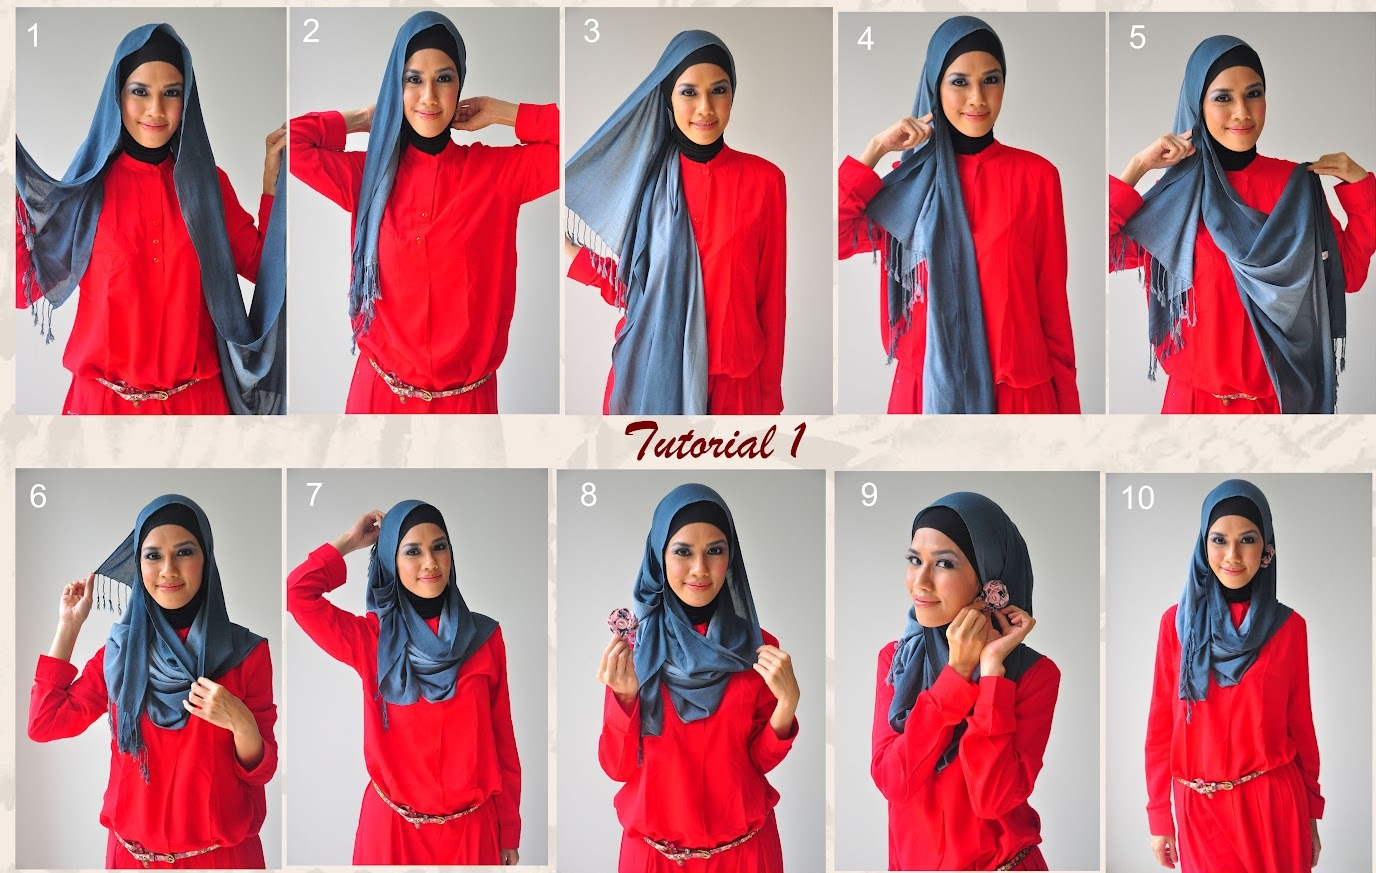 Latest Hijab Style DesignTrends & Tutorial For Girls 2015-2016 with Pictures (1)